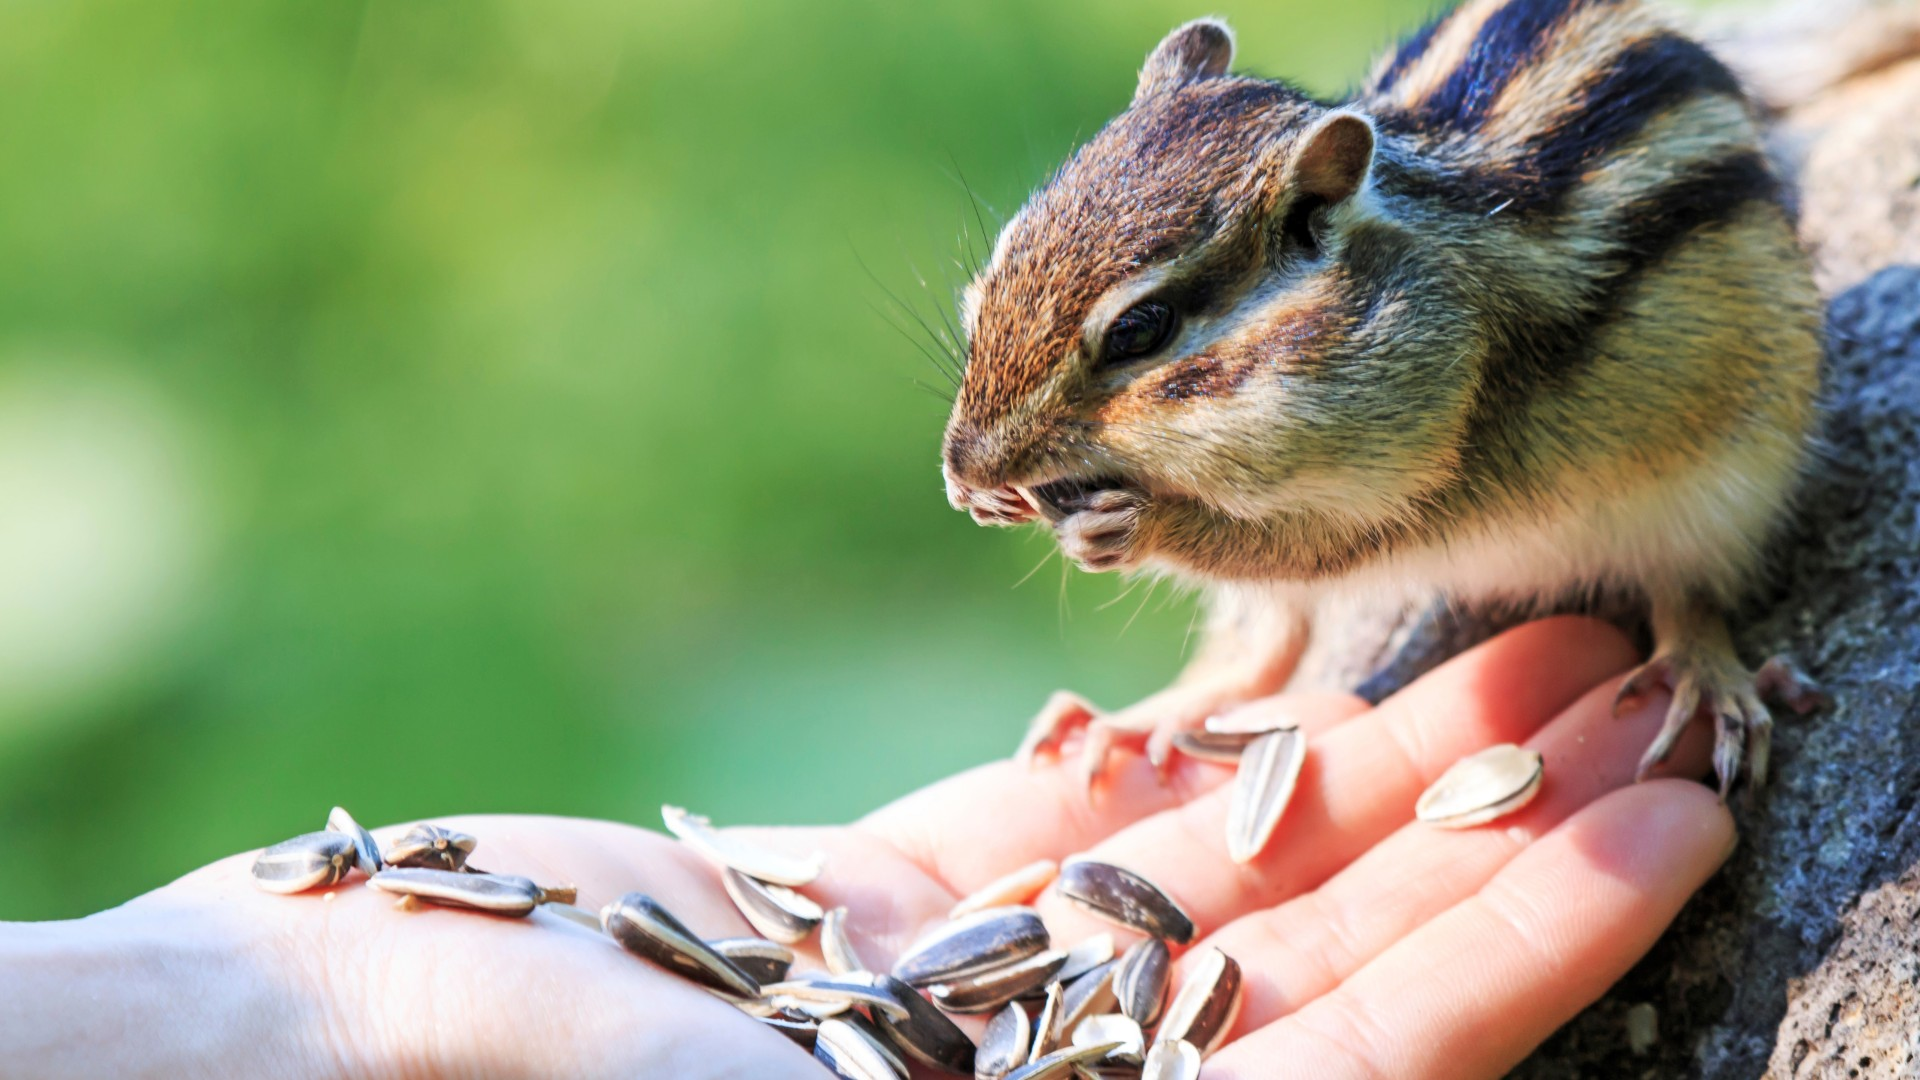 Chipmunk eating food from the palm of a human